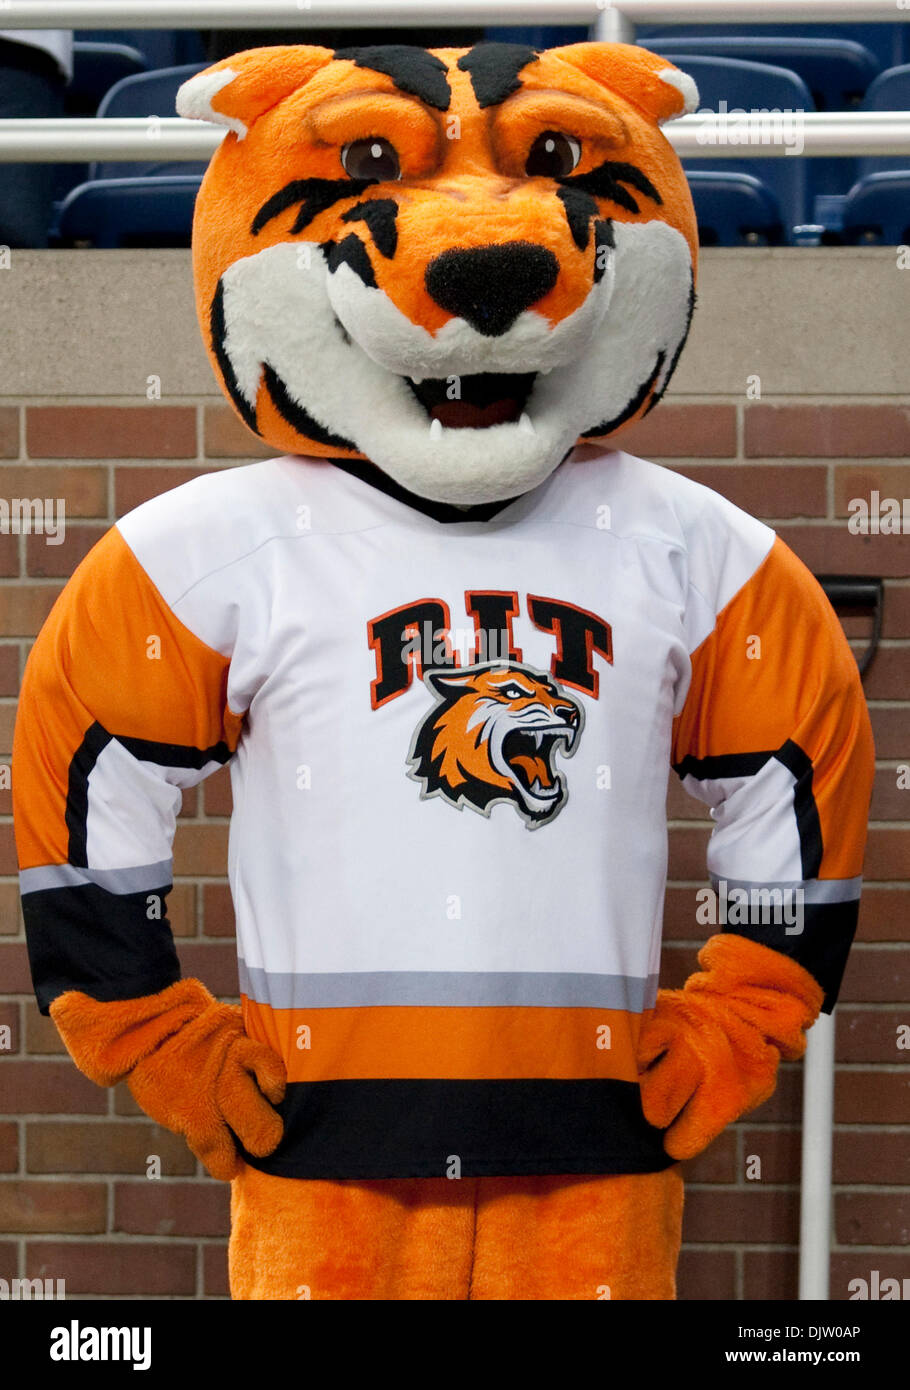 My Ford Credit >> RIT mascot during game action between the Wisconsin Badgers and the Stock Photo: 63244014 - Alamy